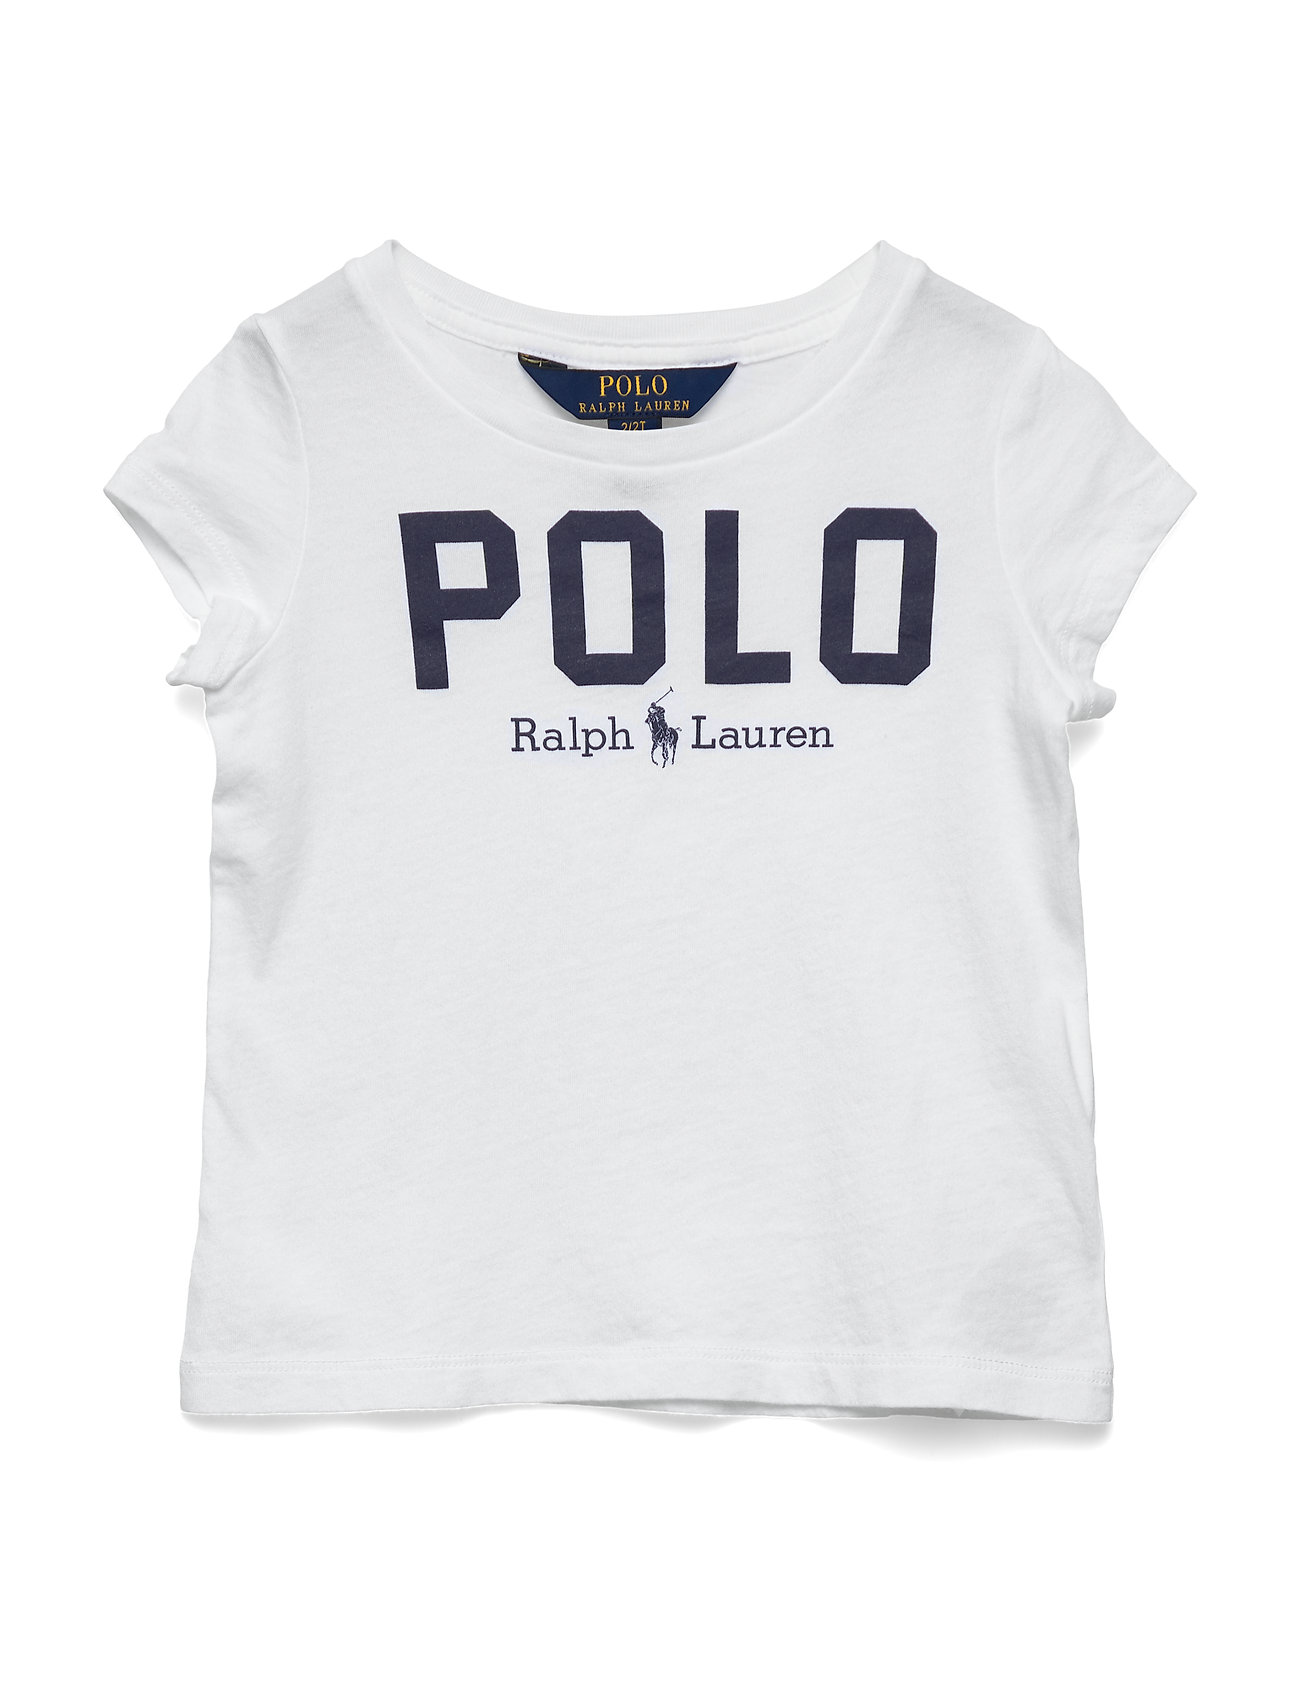 Ralph Lauren Kids Polo Cotton Jersey Tee - WHITE